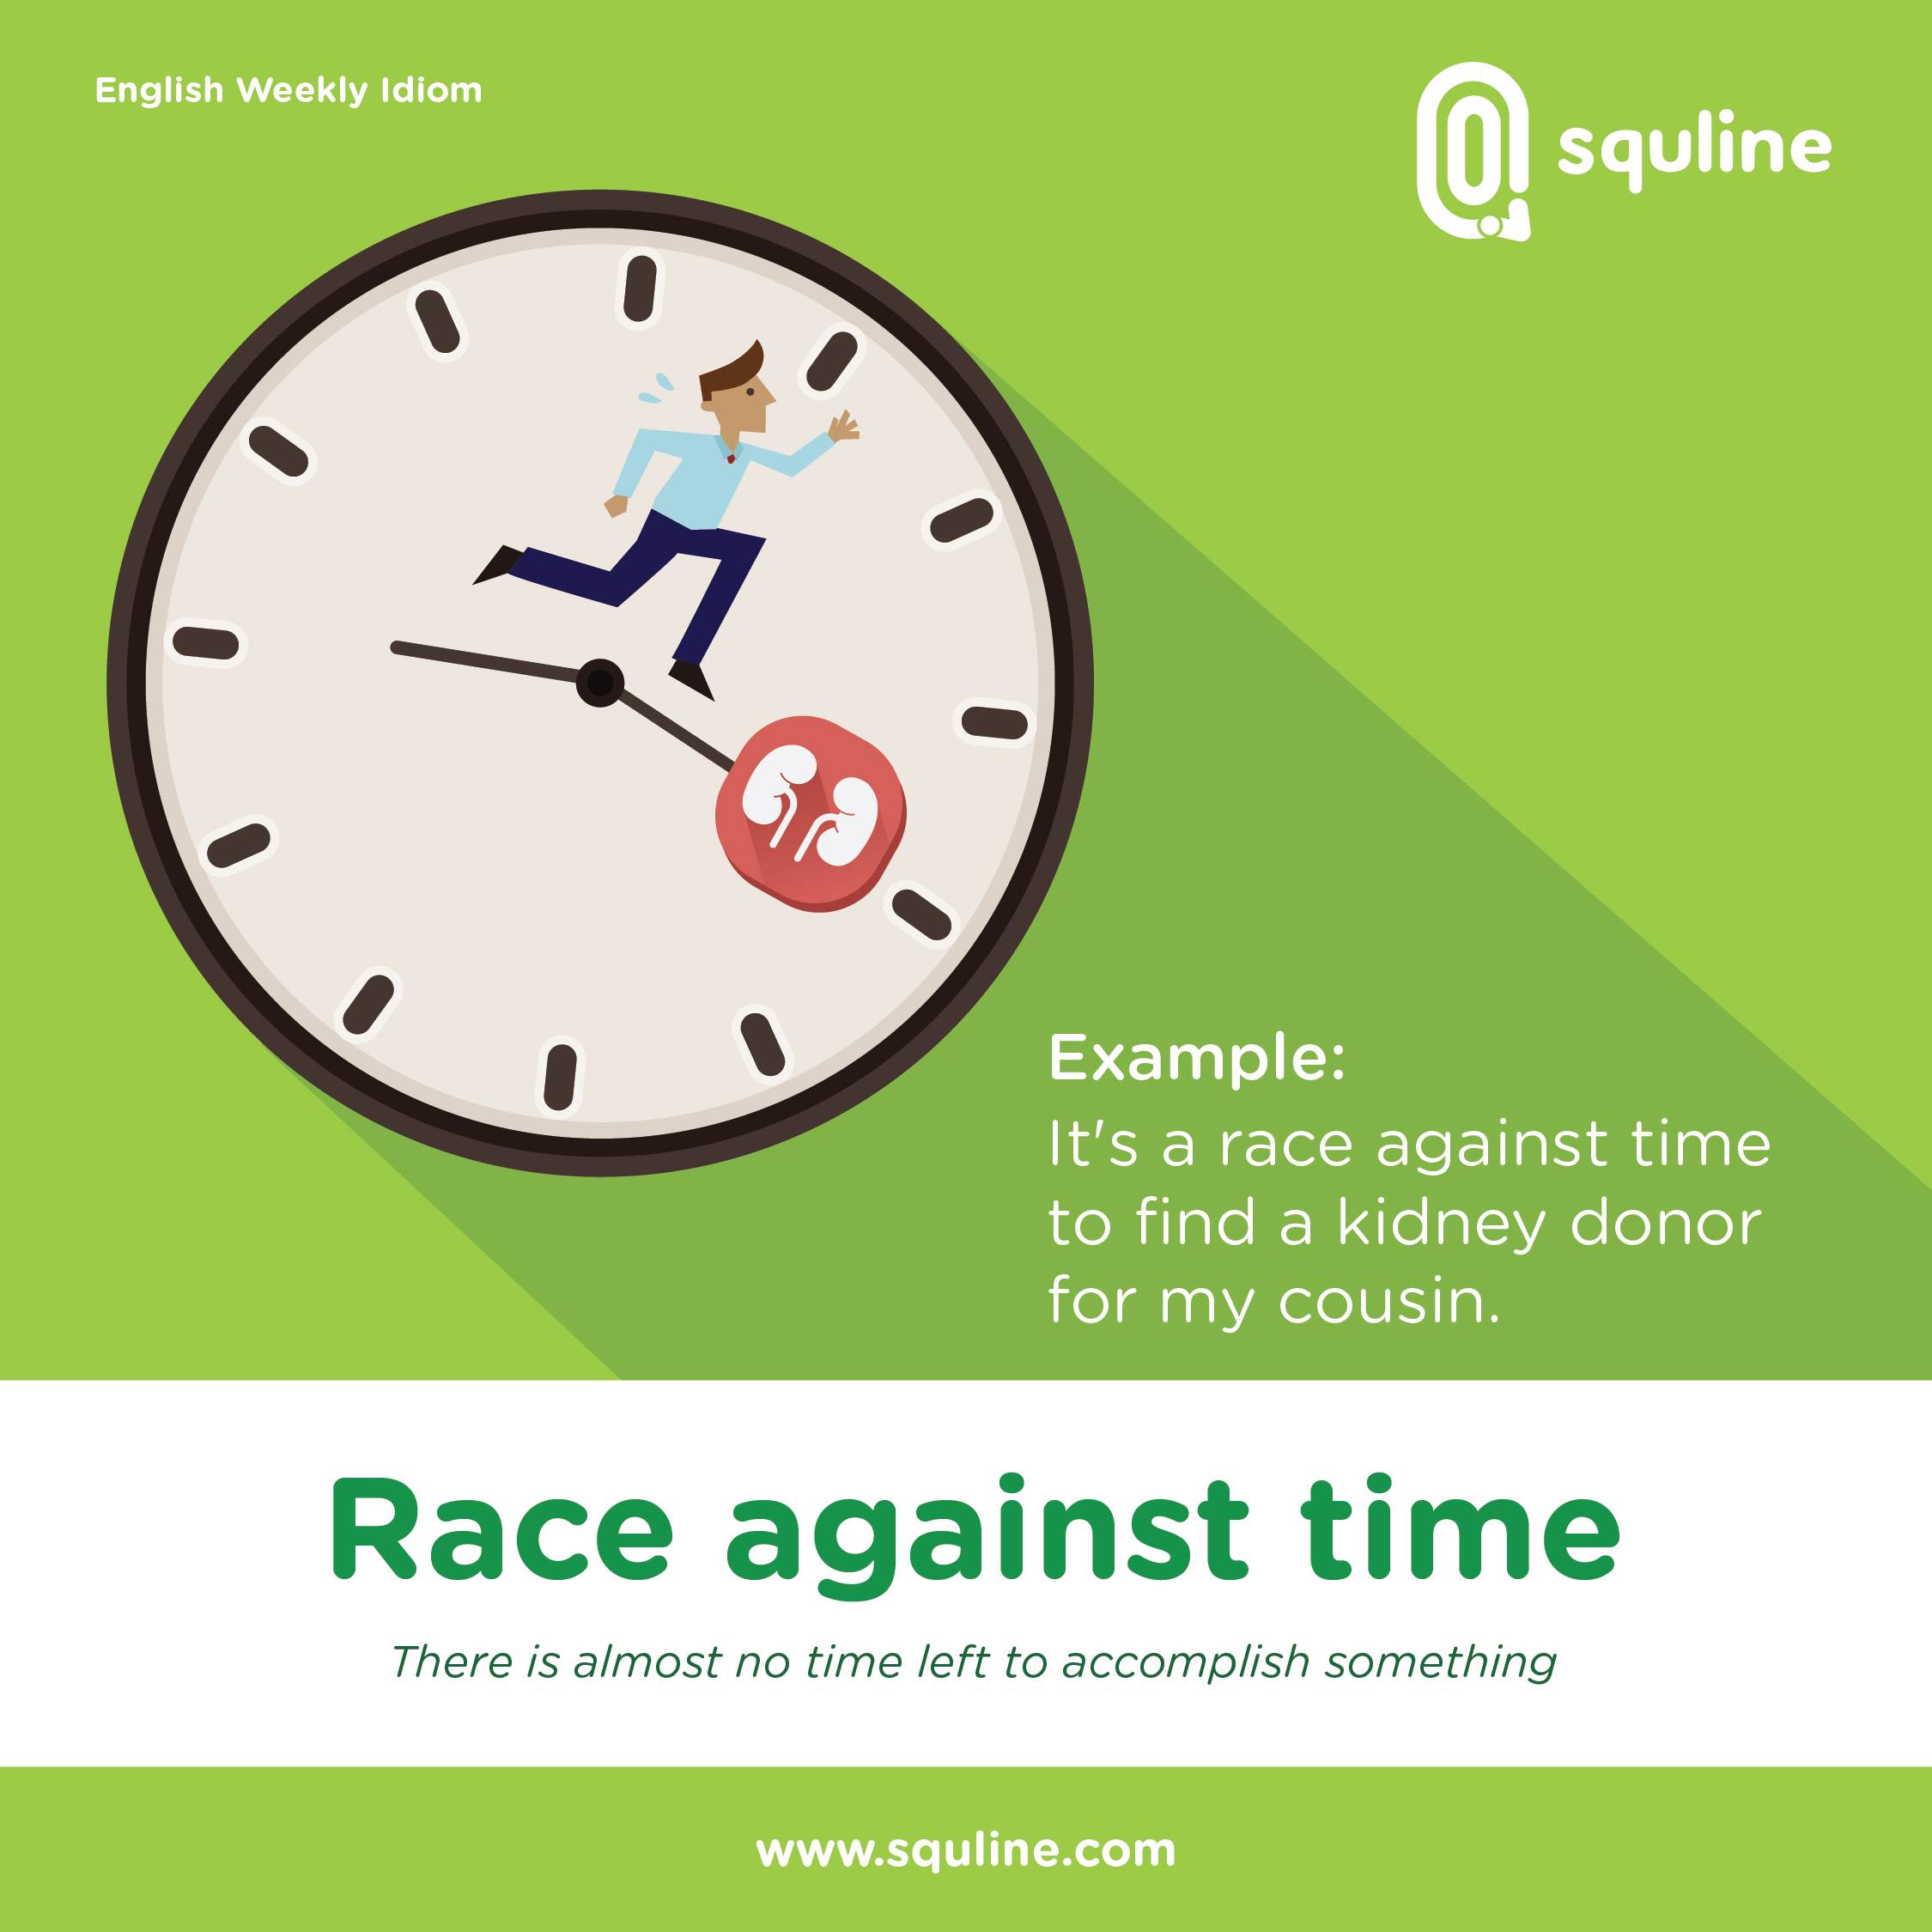 English Idiom Race Against Time